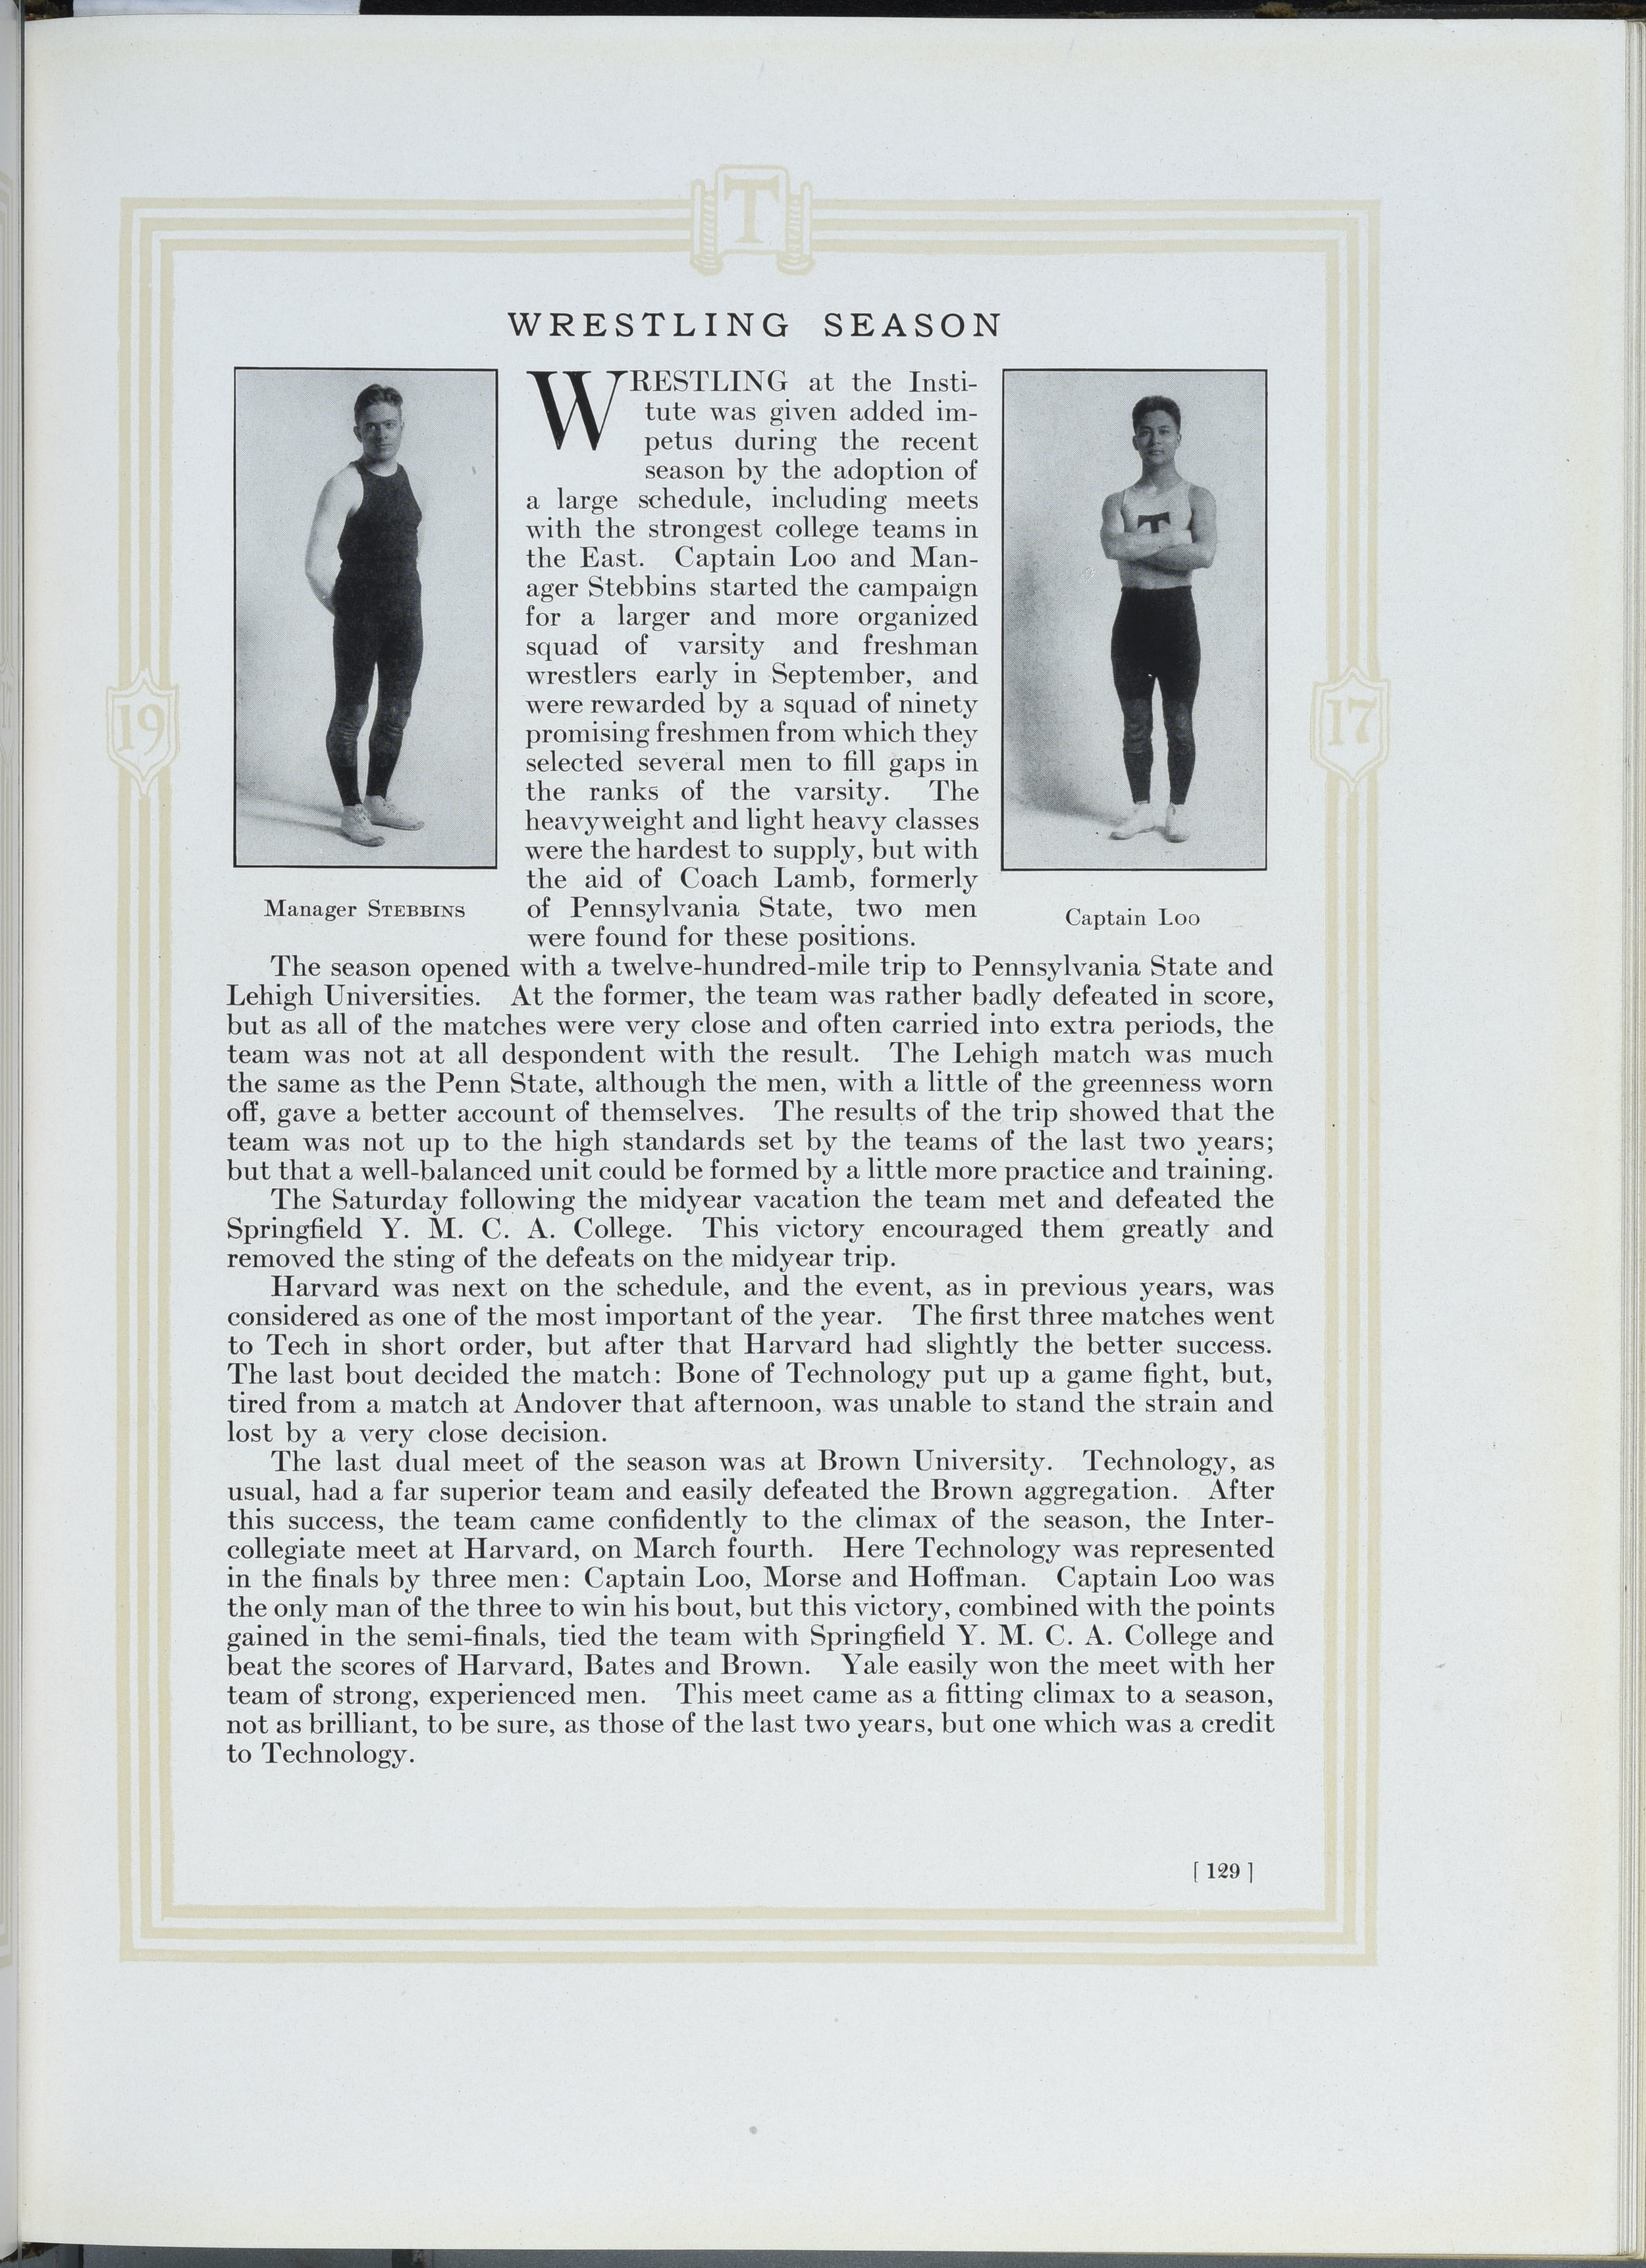 """""""Wrestling Season,"""" Technique 1917, 129. Image courtesy MIT Archive and Special Collections."""